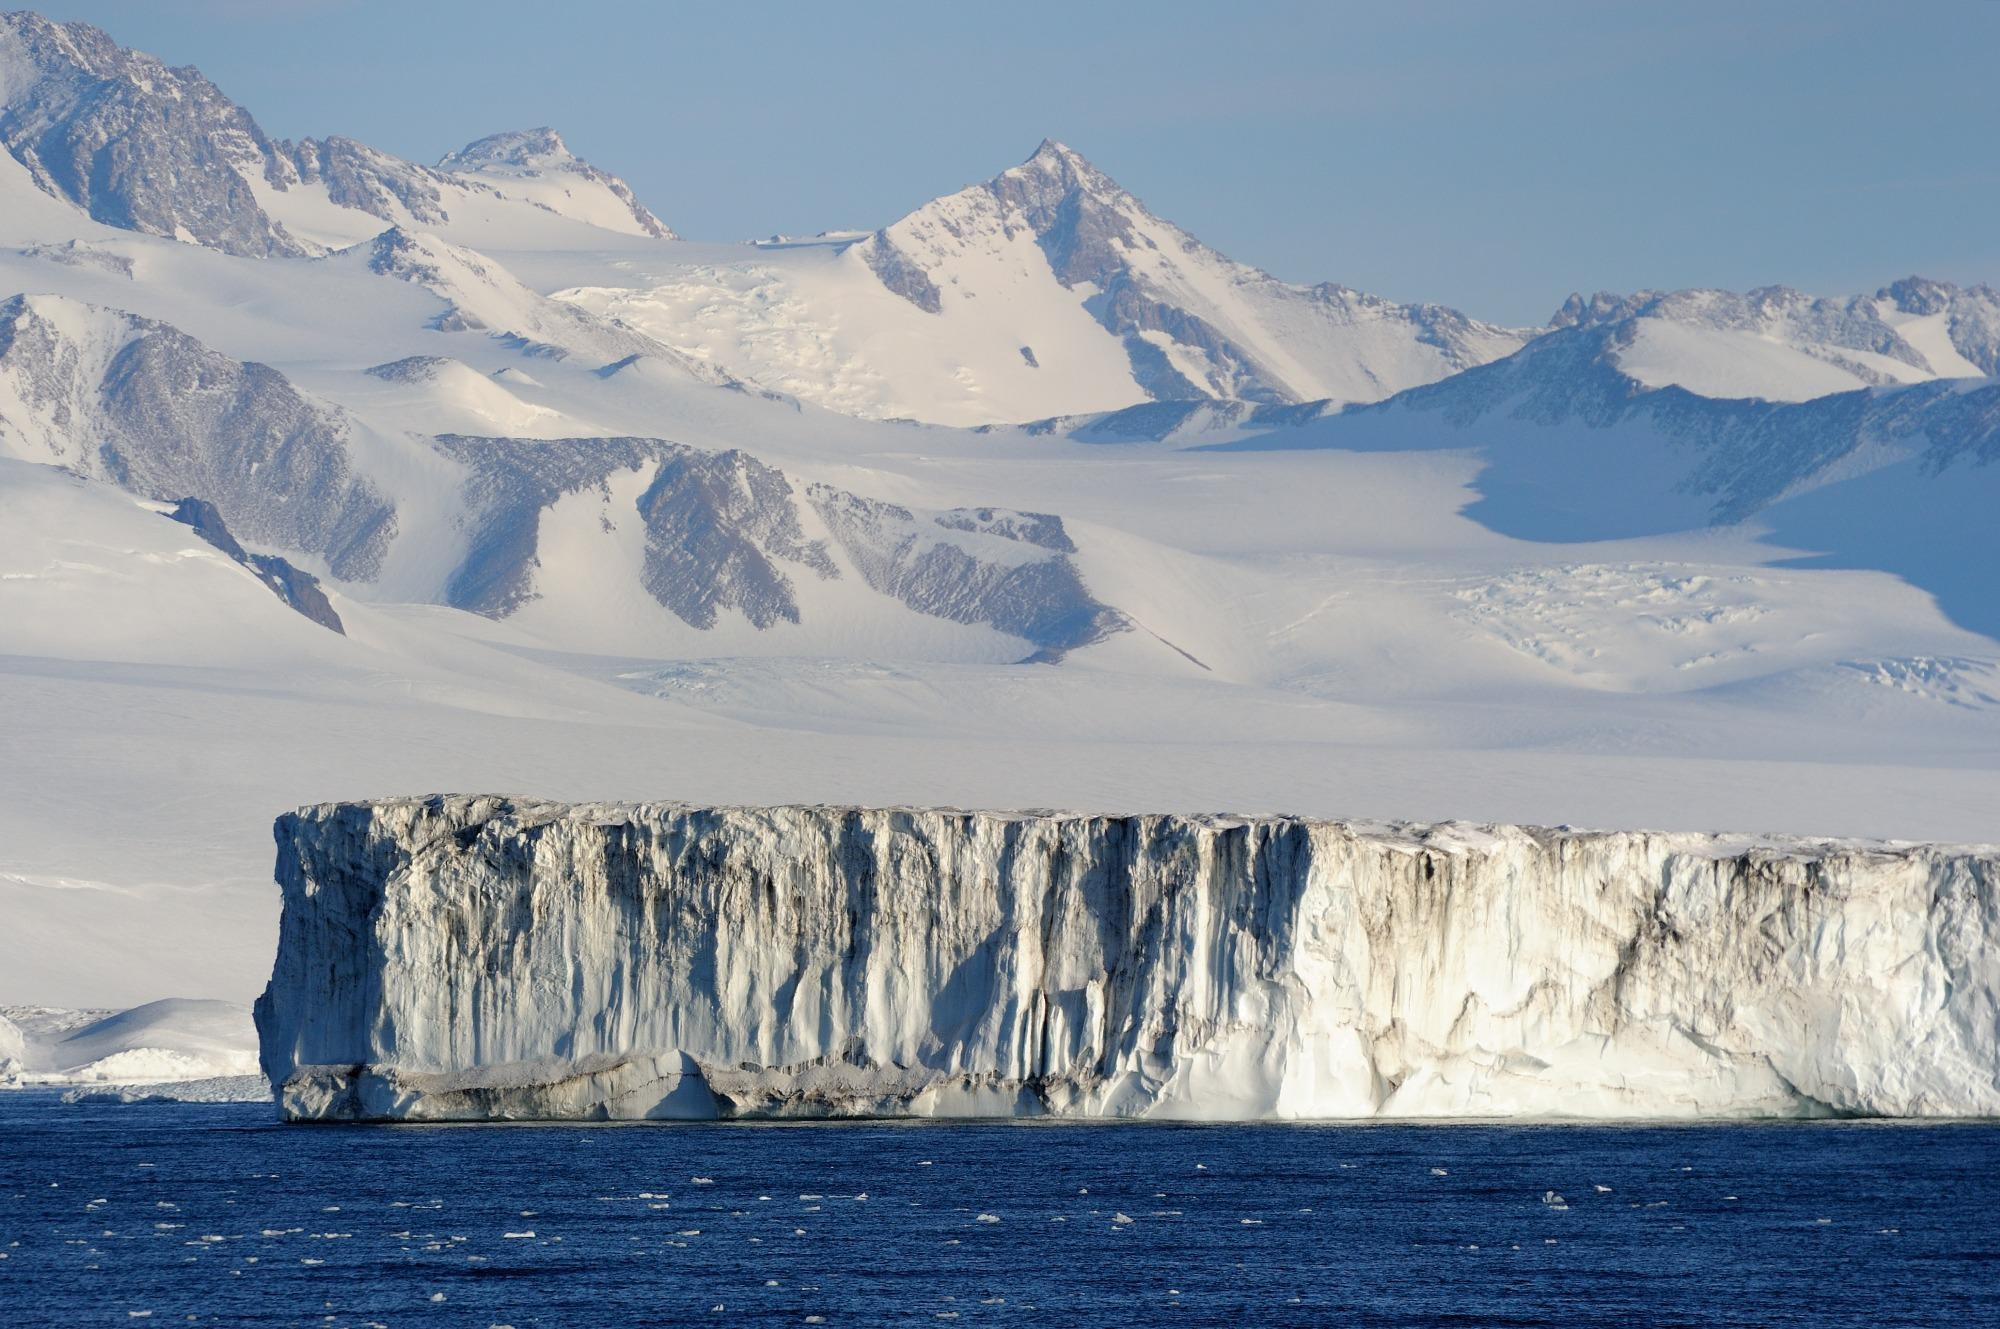 Global Warming Could Lead to Collapse of More than One-Third of Antarctic Ice Shelf